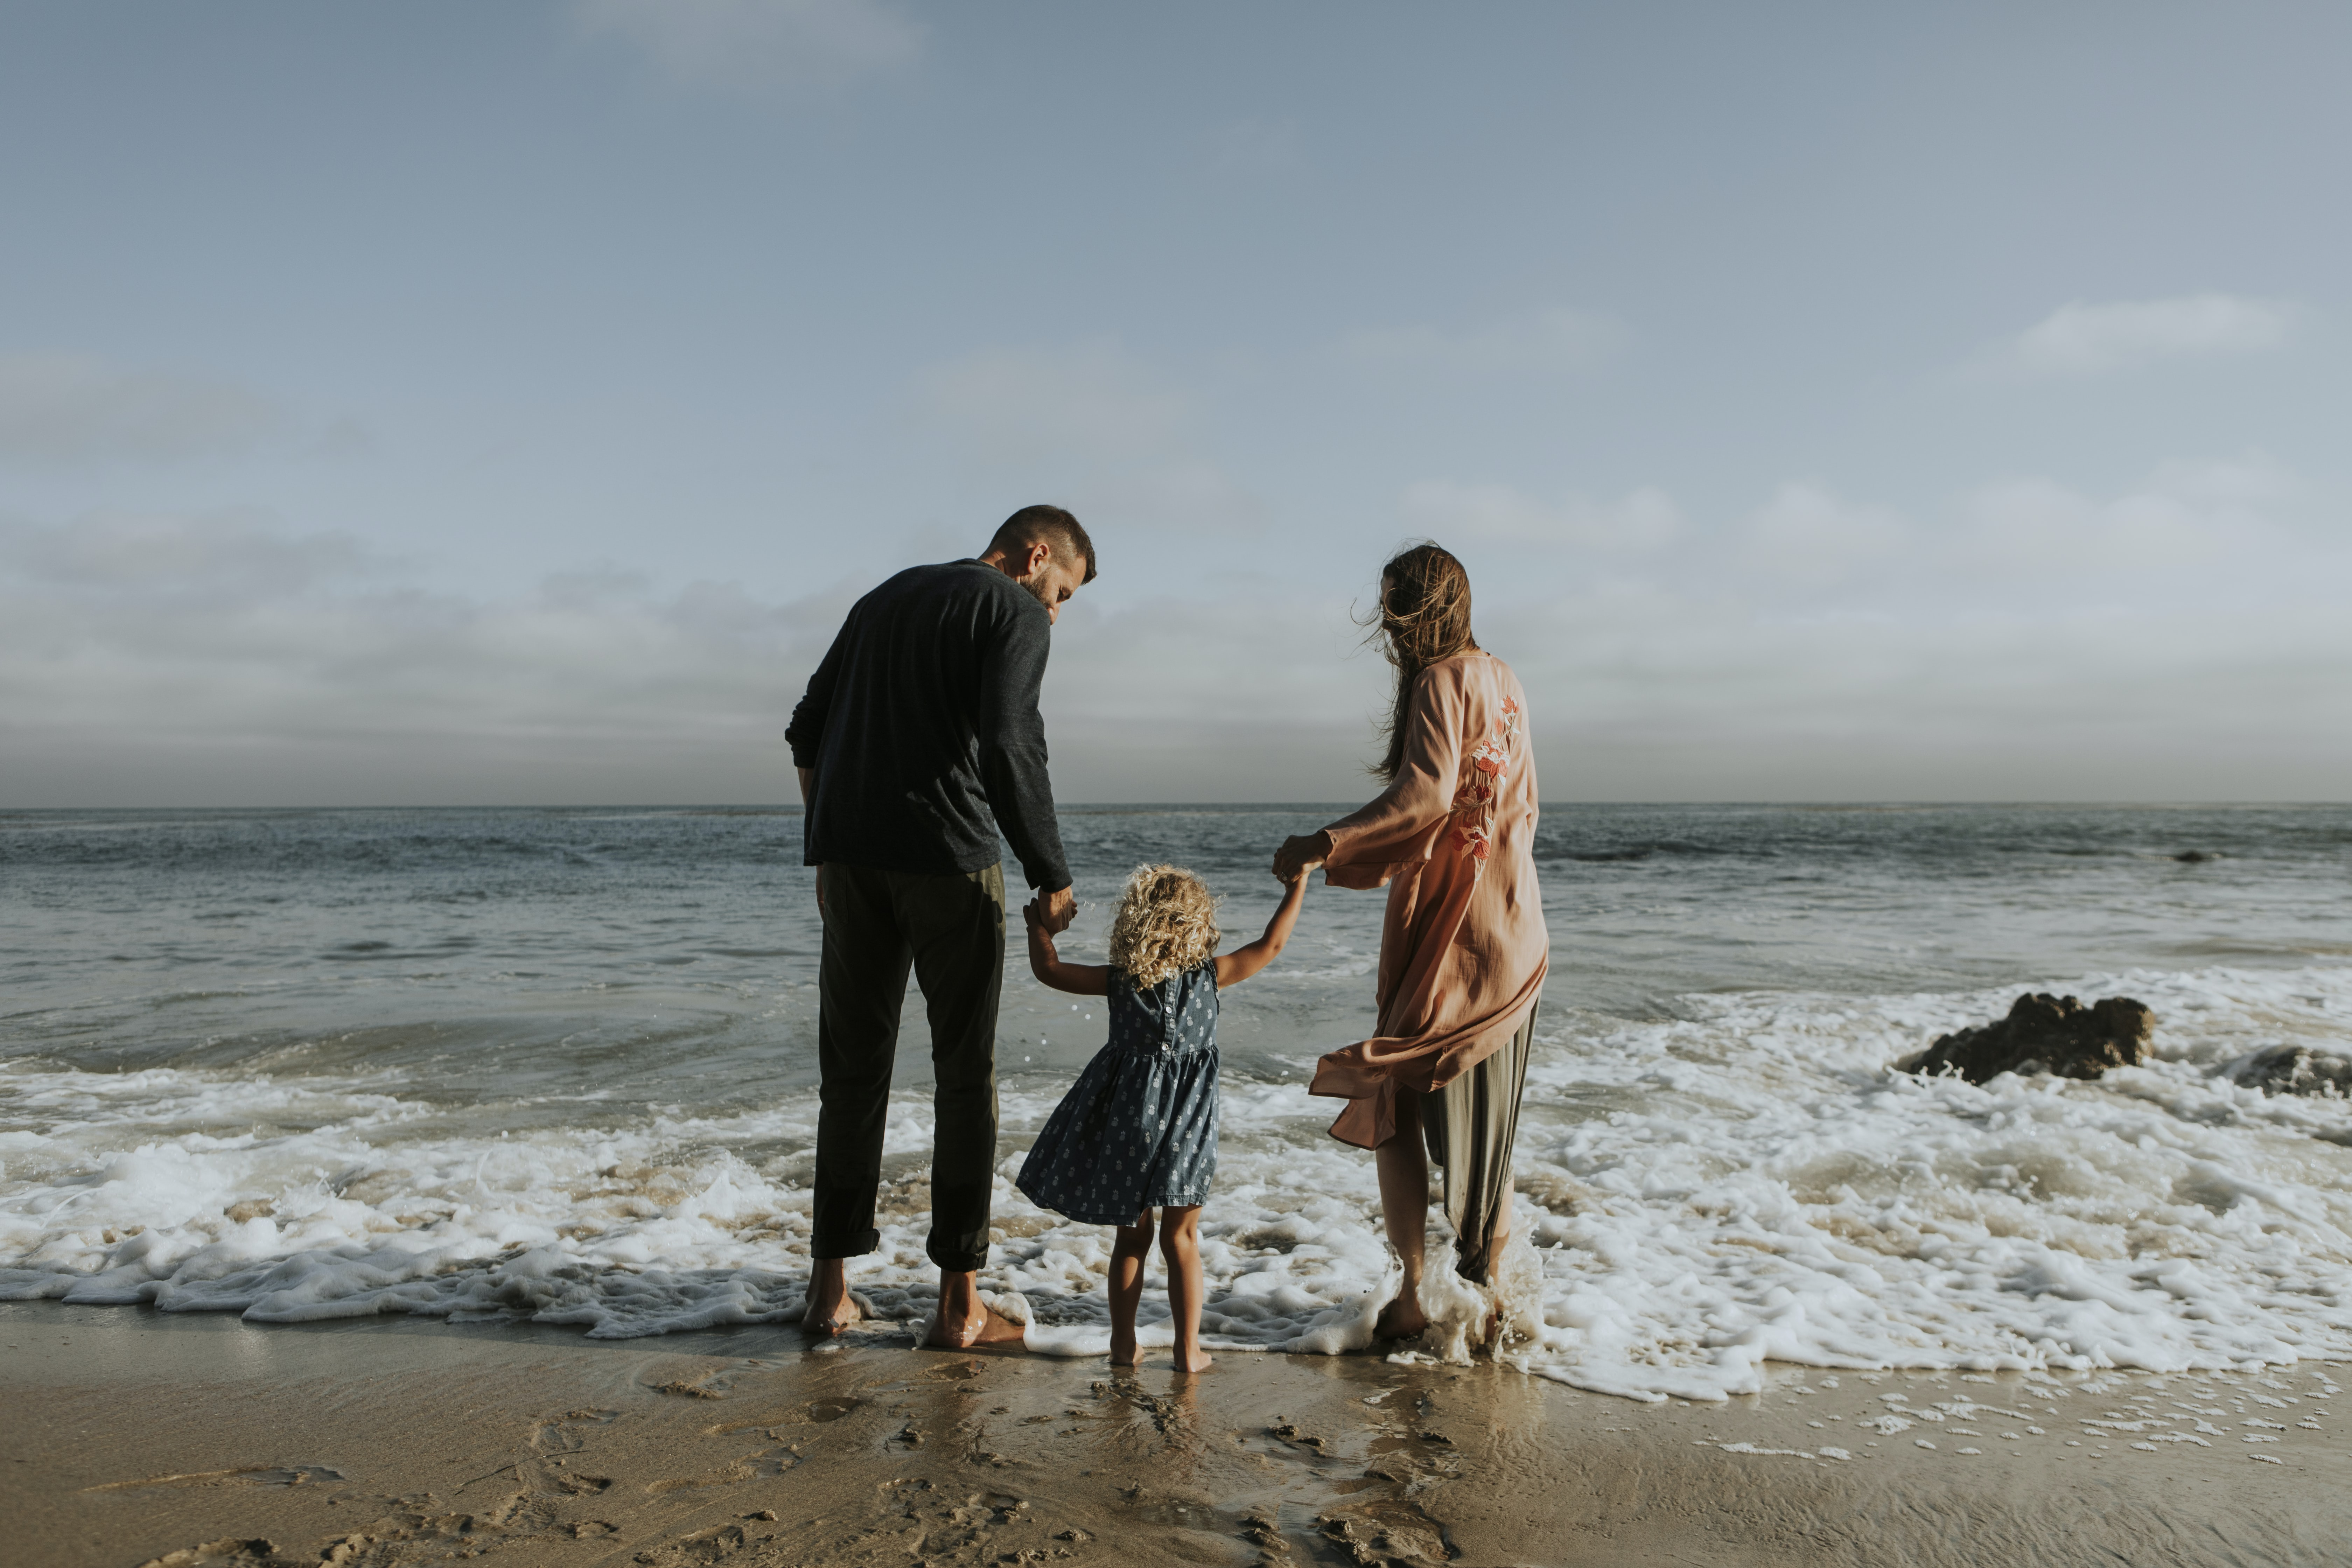 man, woman and child standing on seashore during daytime